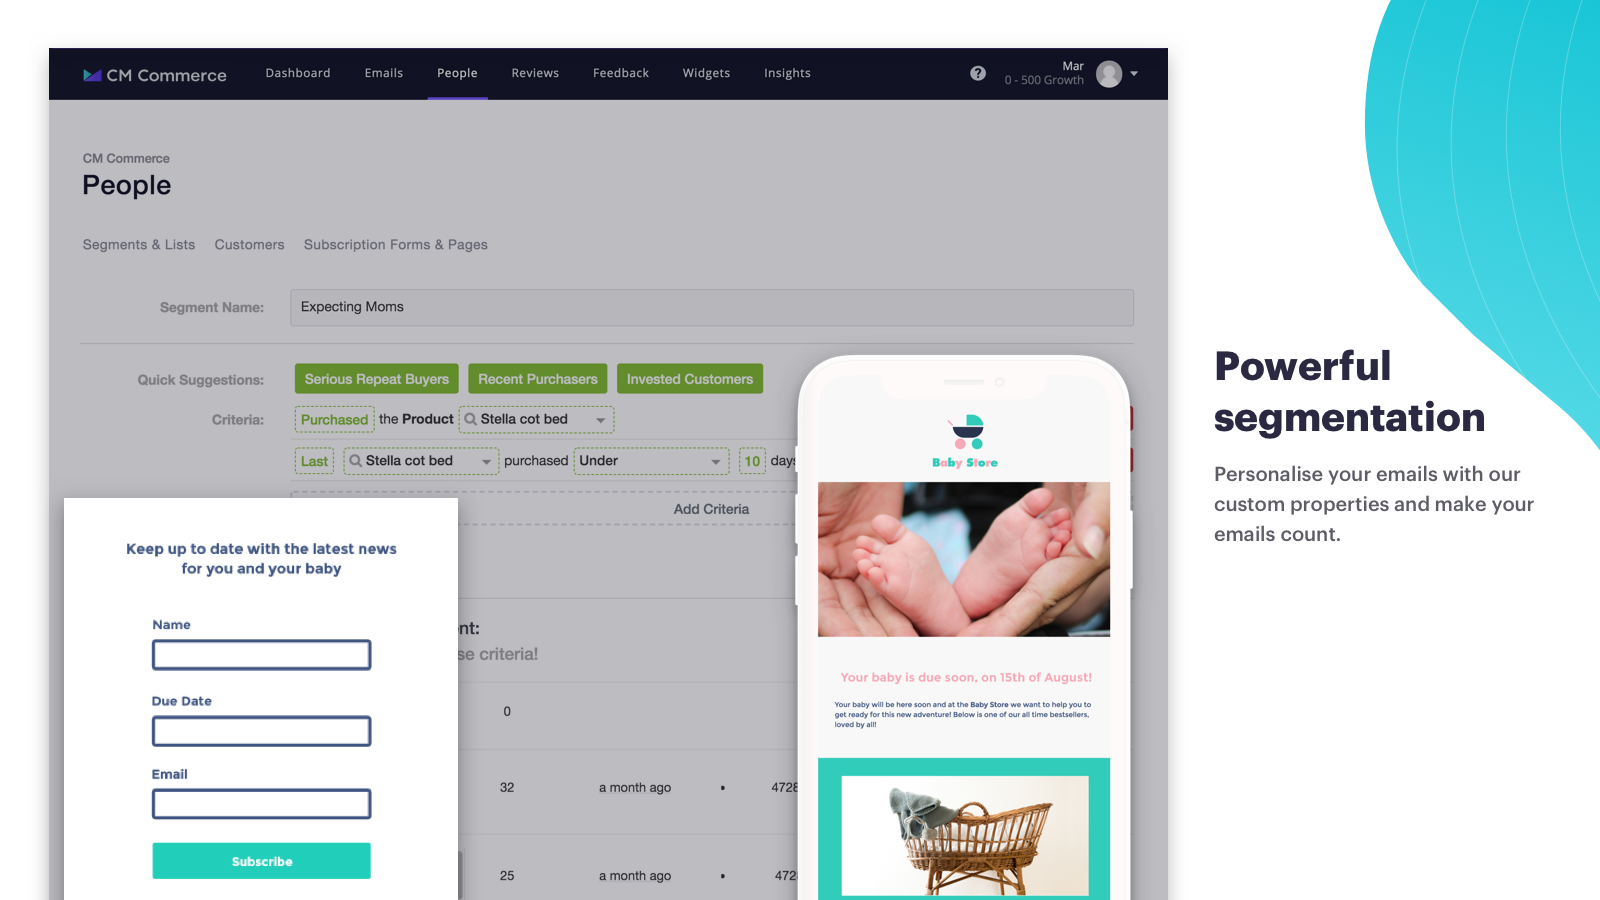 Smart segmentation to personalize your email campaigns.